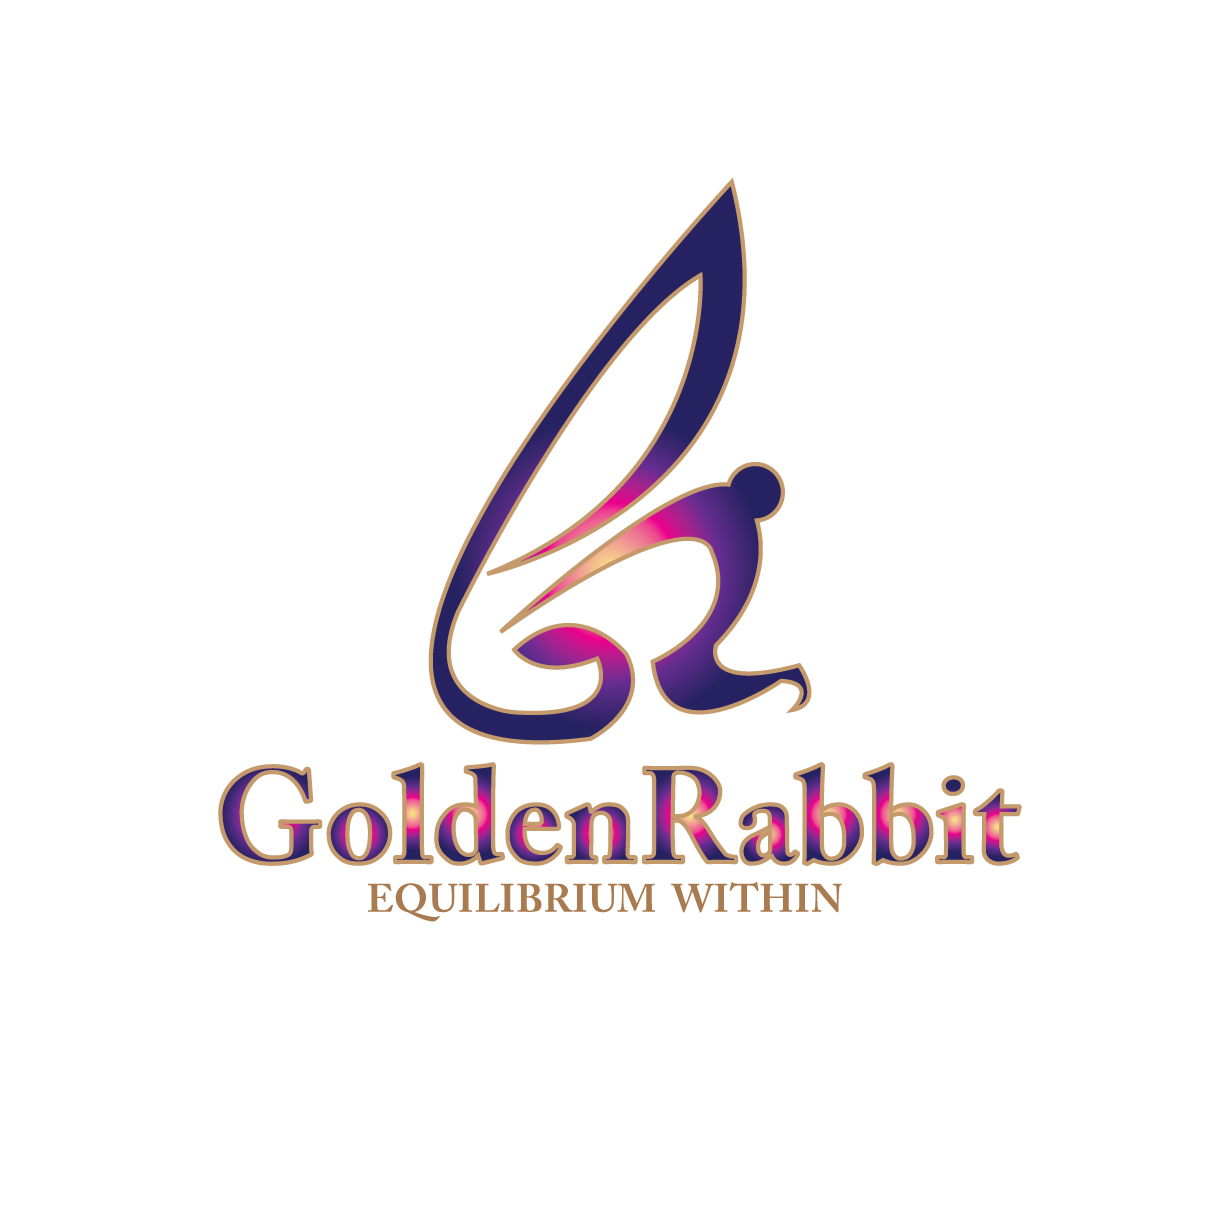 Logo Design by stormbighit - Entry No. 44 in the Logo Design Contest Equilibrium Within - Living Jewelry.